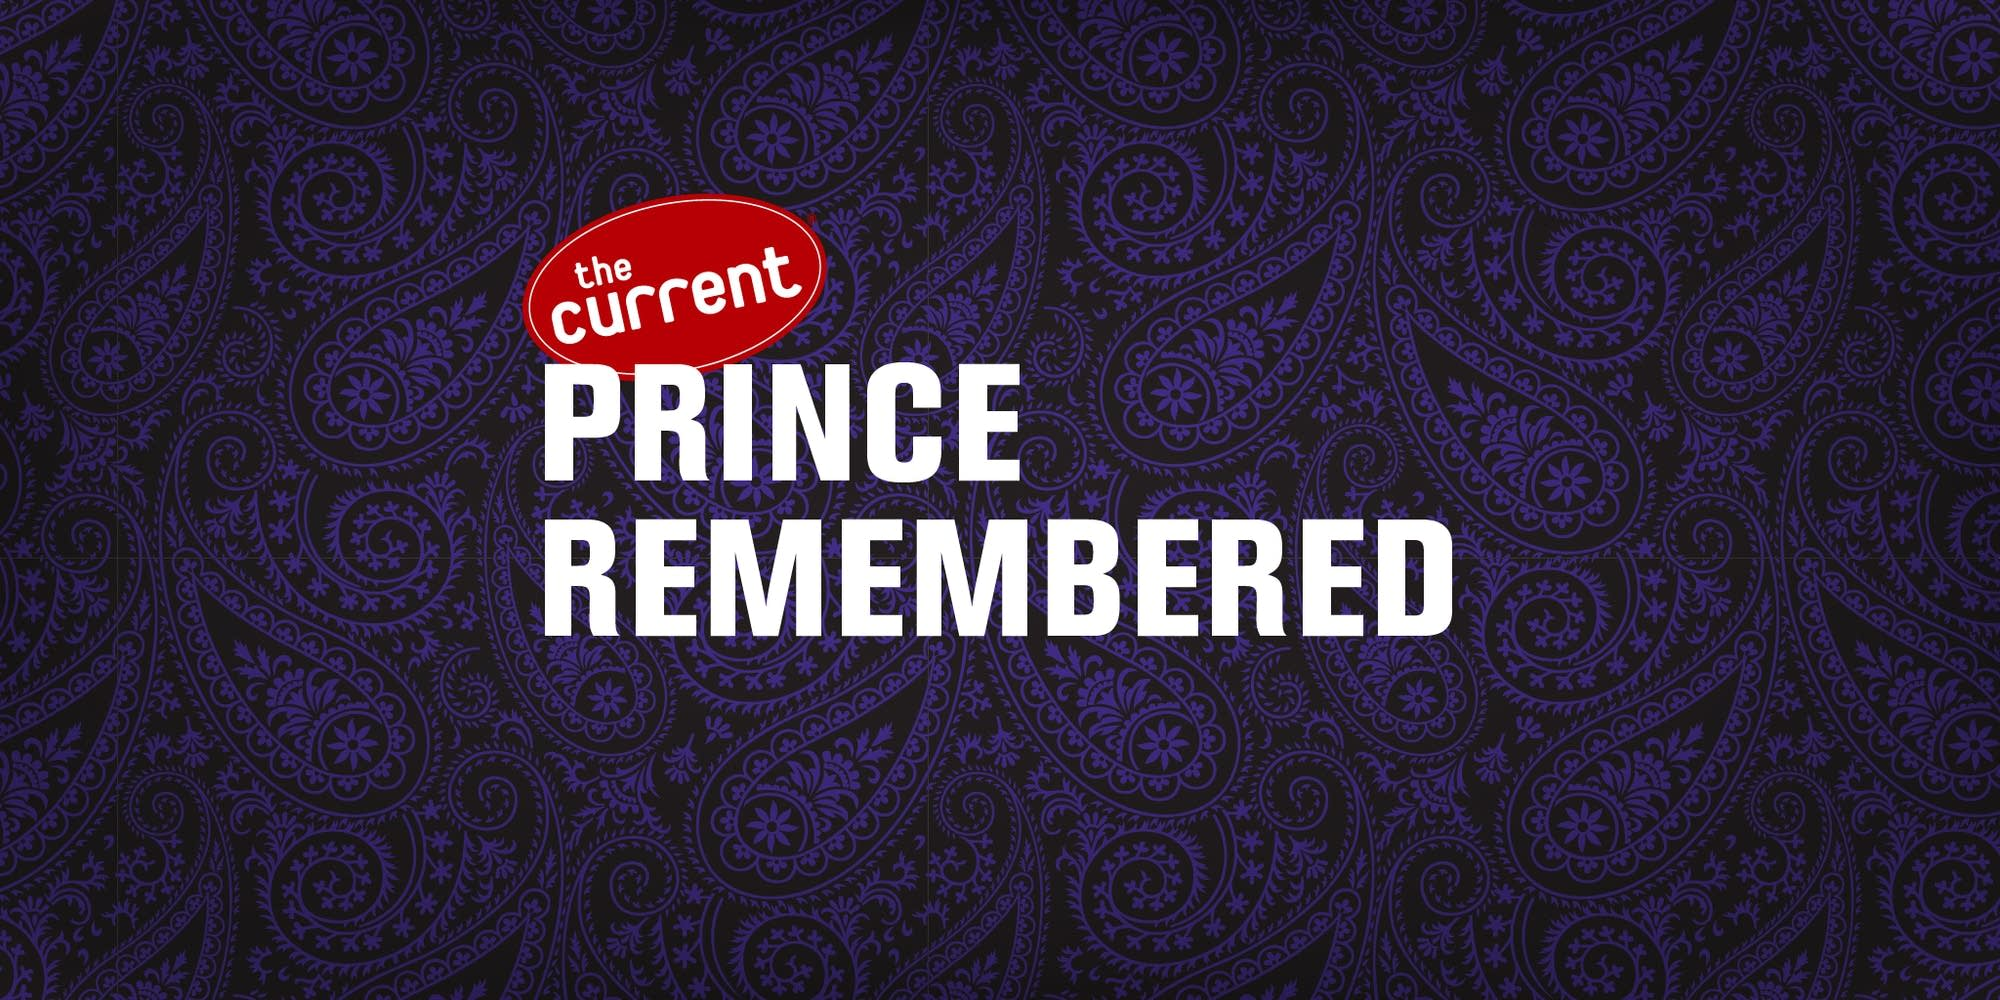 Prince Remembered graphics 2021; 1024x512